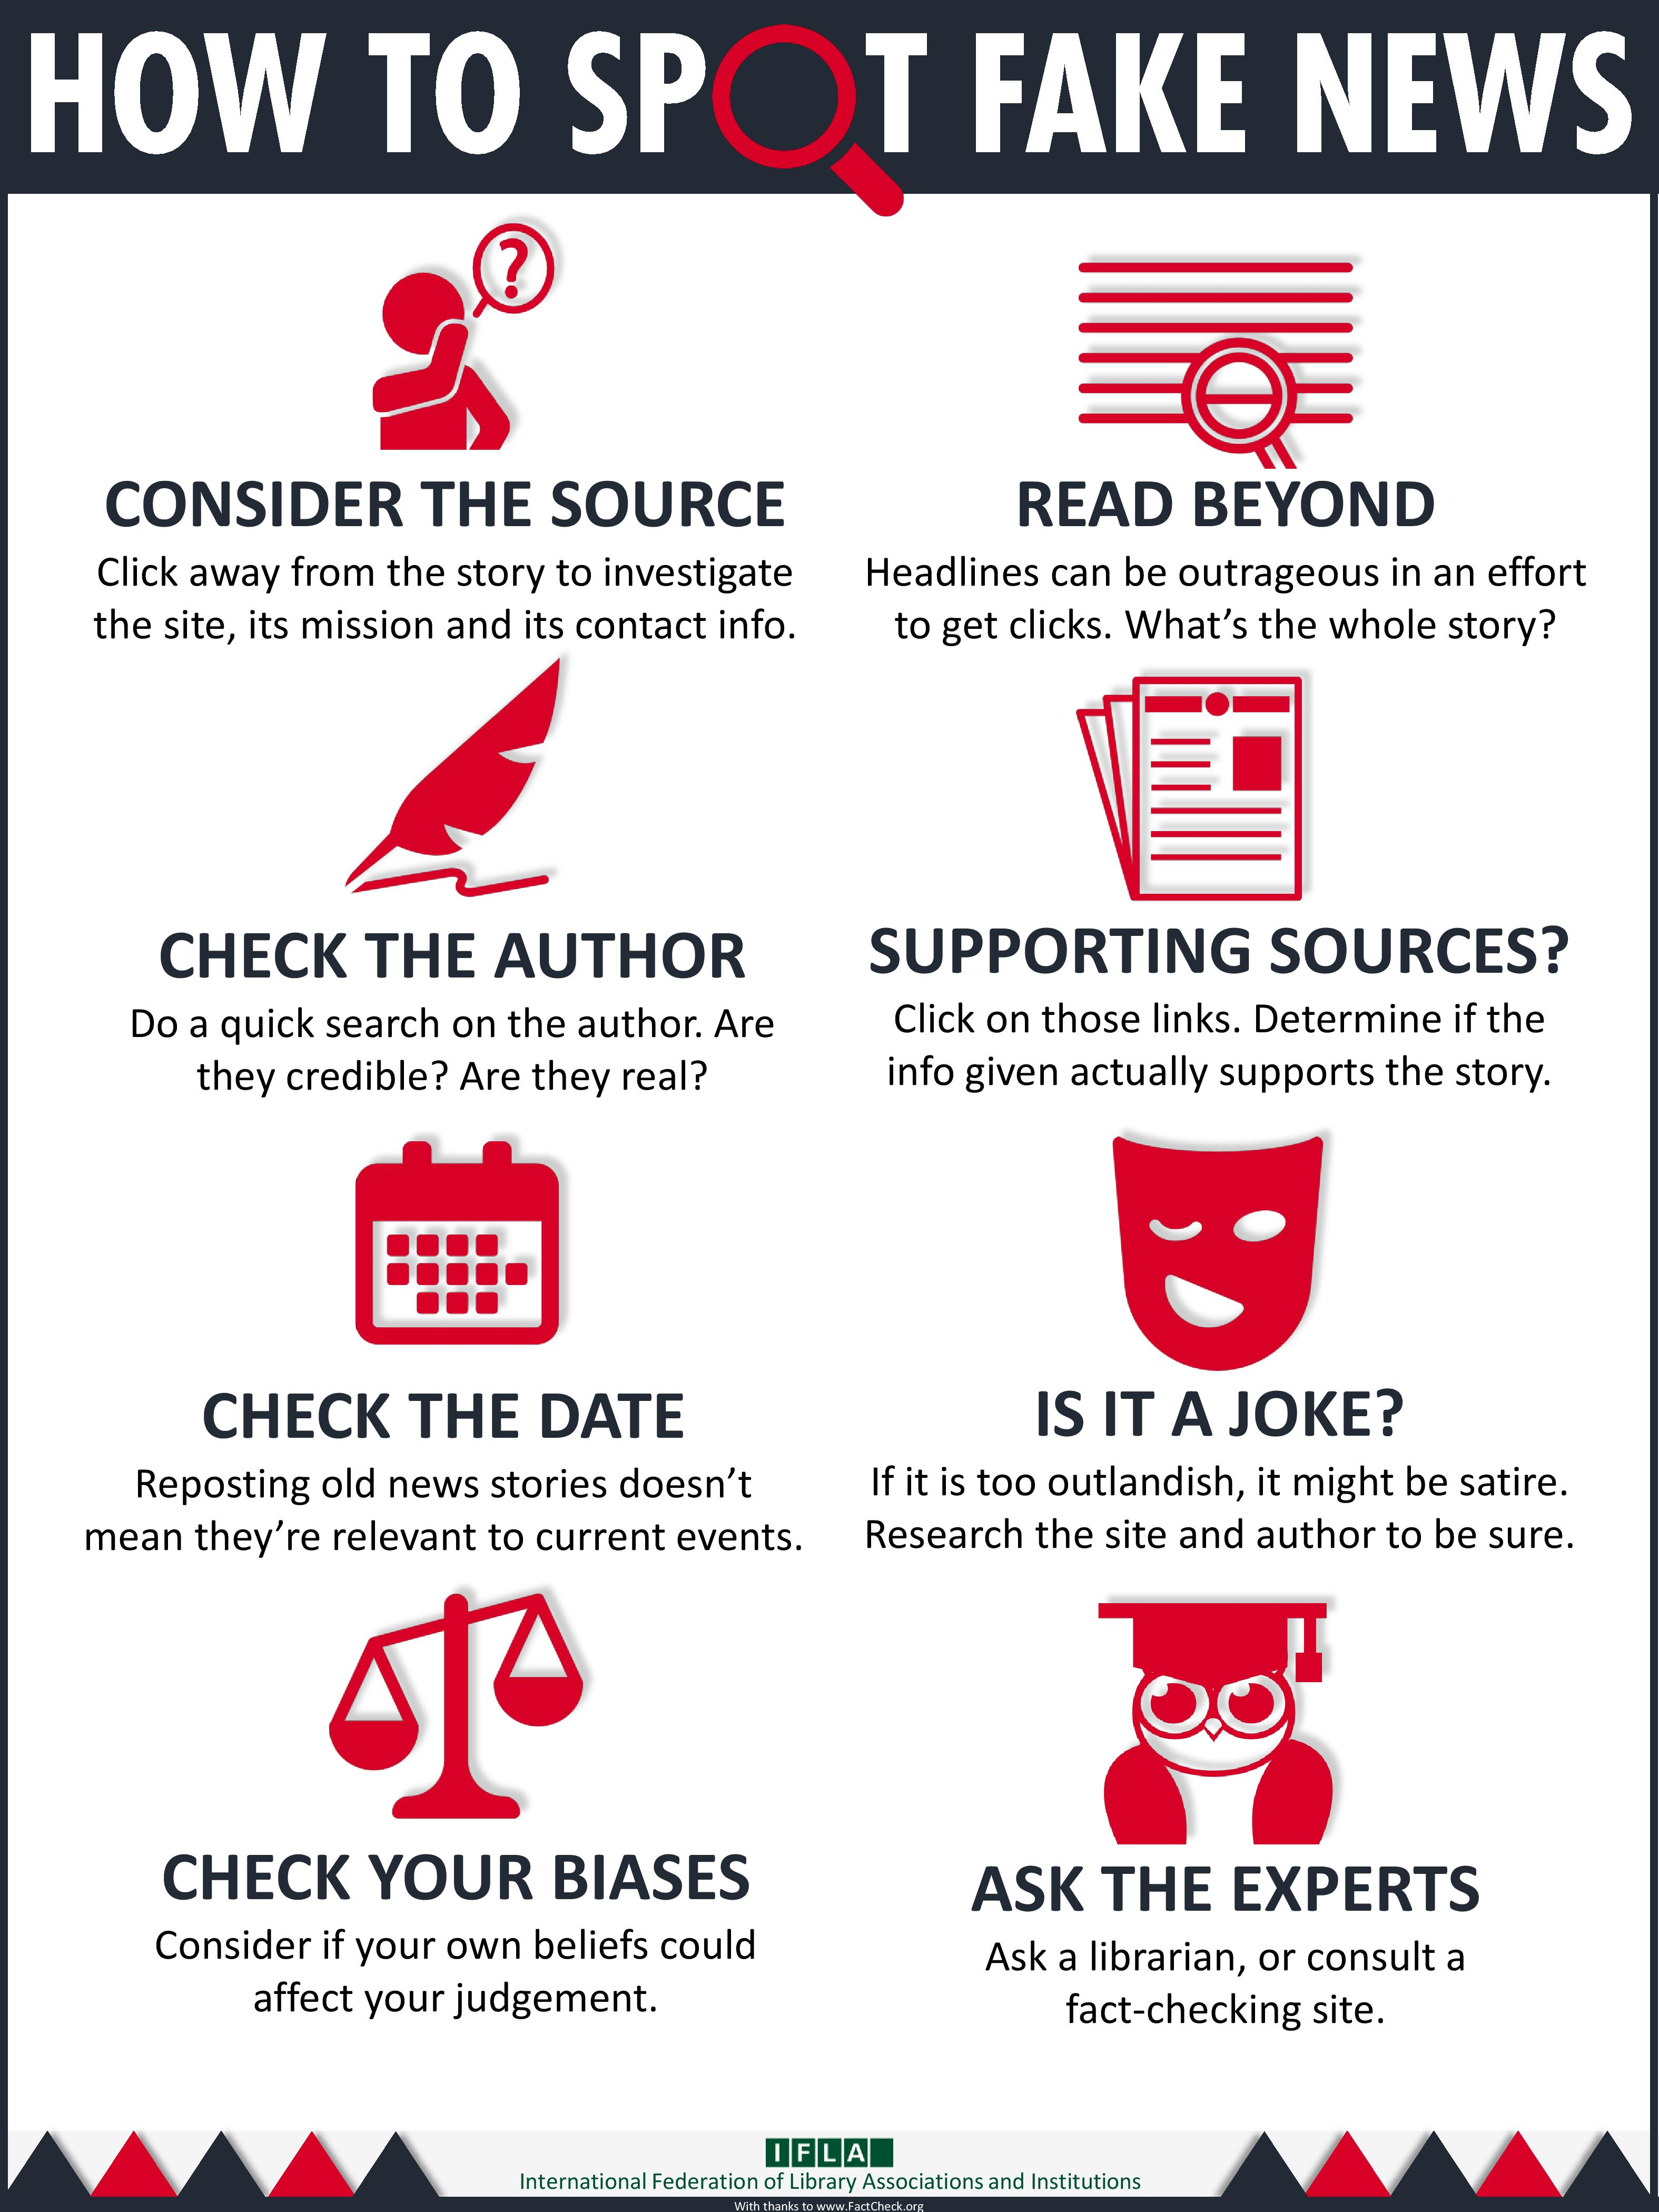 Infographic showing steps to spot fake news